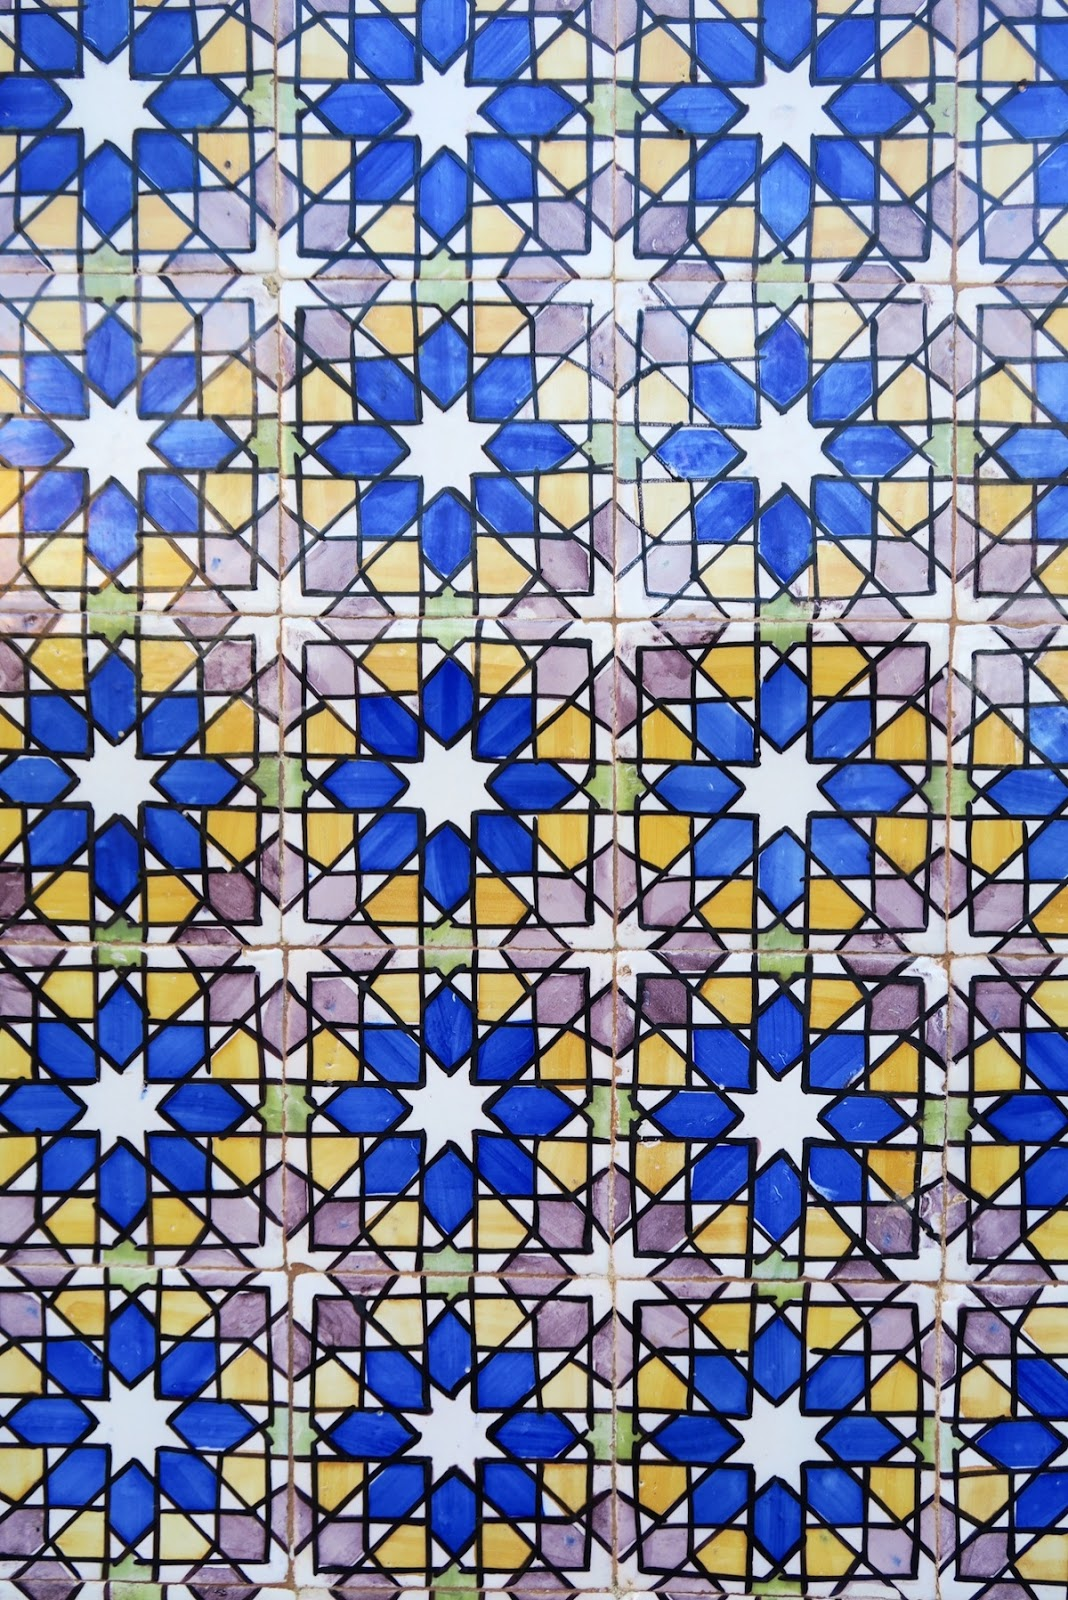 This is a close-up of beautiful tile work at the Pena Palace in Sintra Portugal. This is a beautiful star pattern mixed with blue, yellow, red and even green tiles.